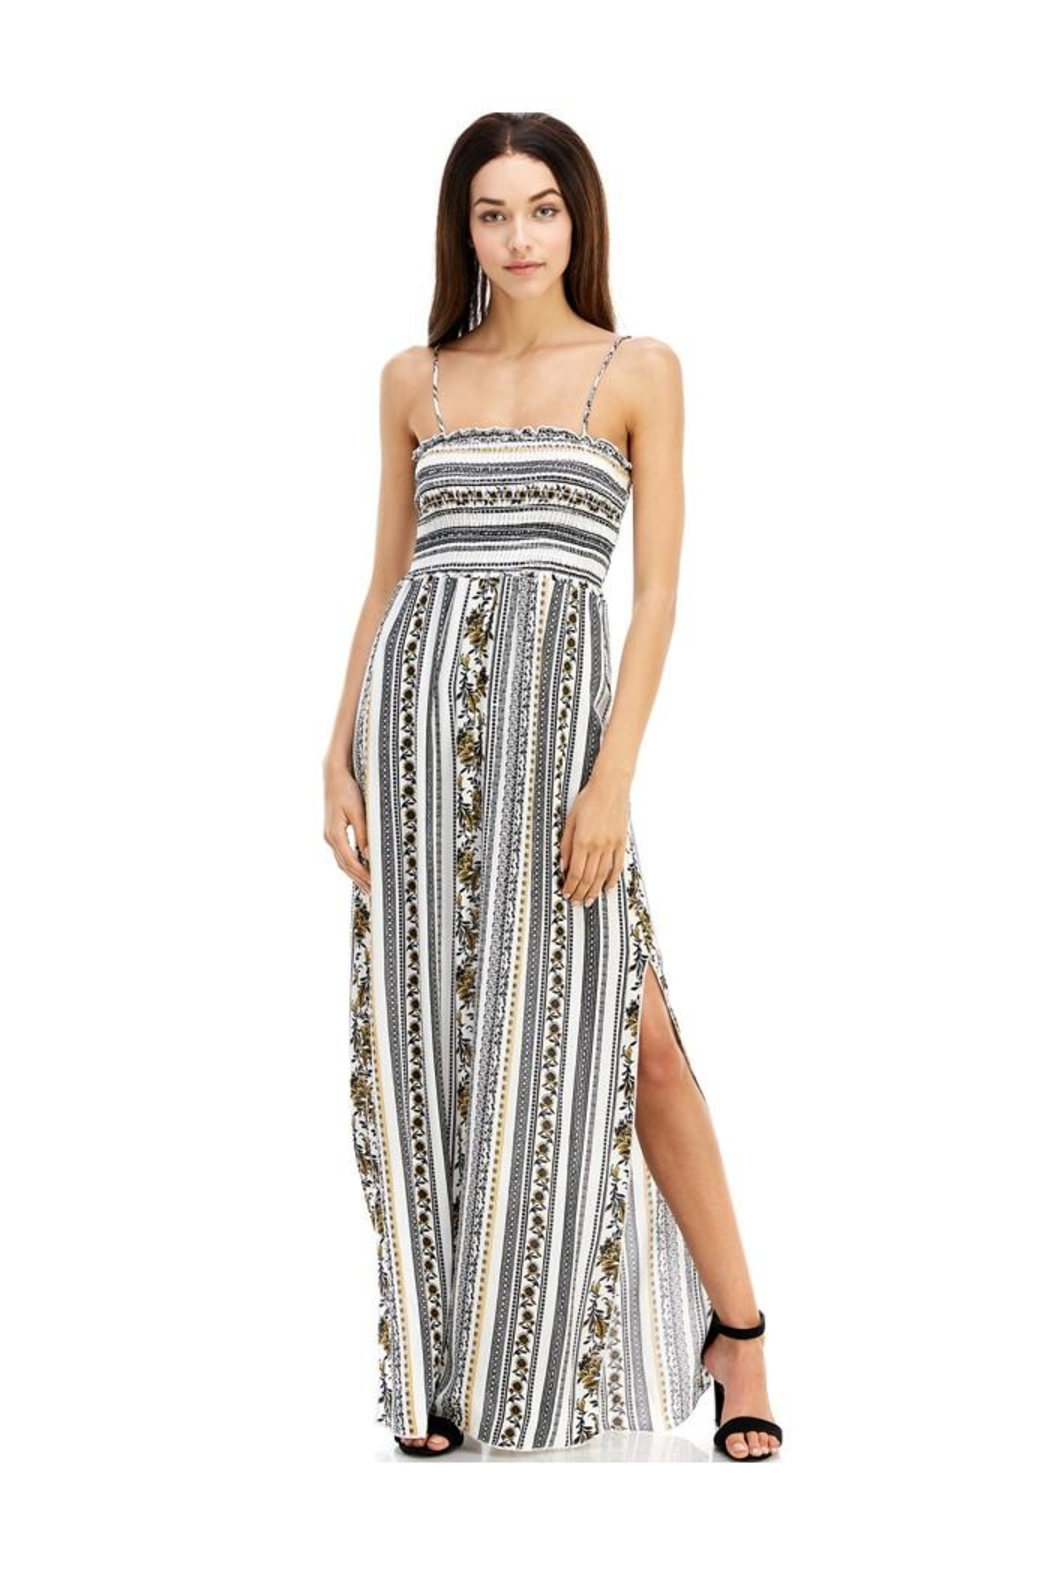 Miley and Molly Ethnic Linear Print Smocking Tube Top Maxi - Main Image